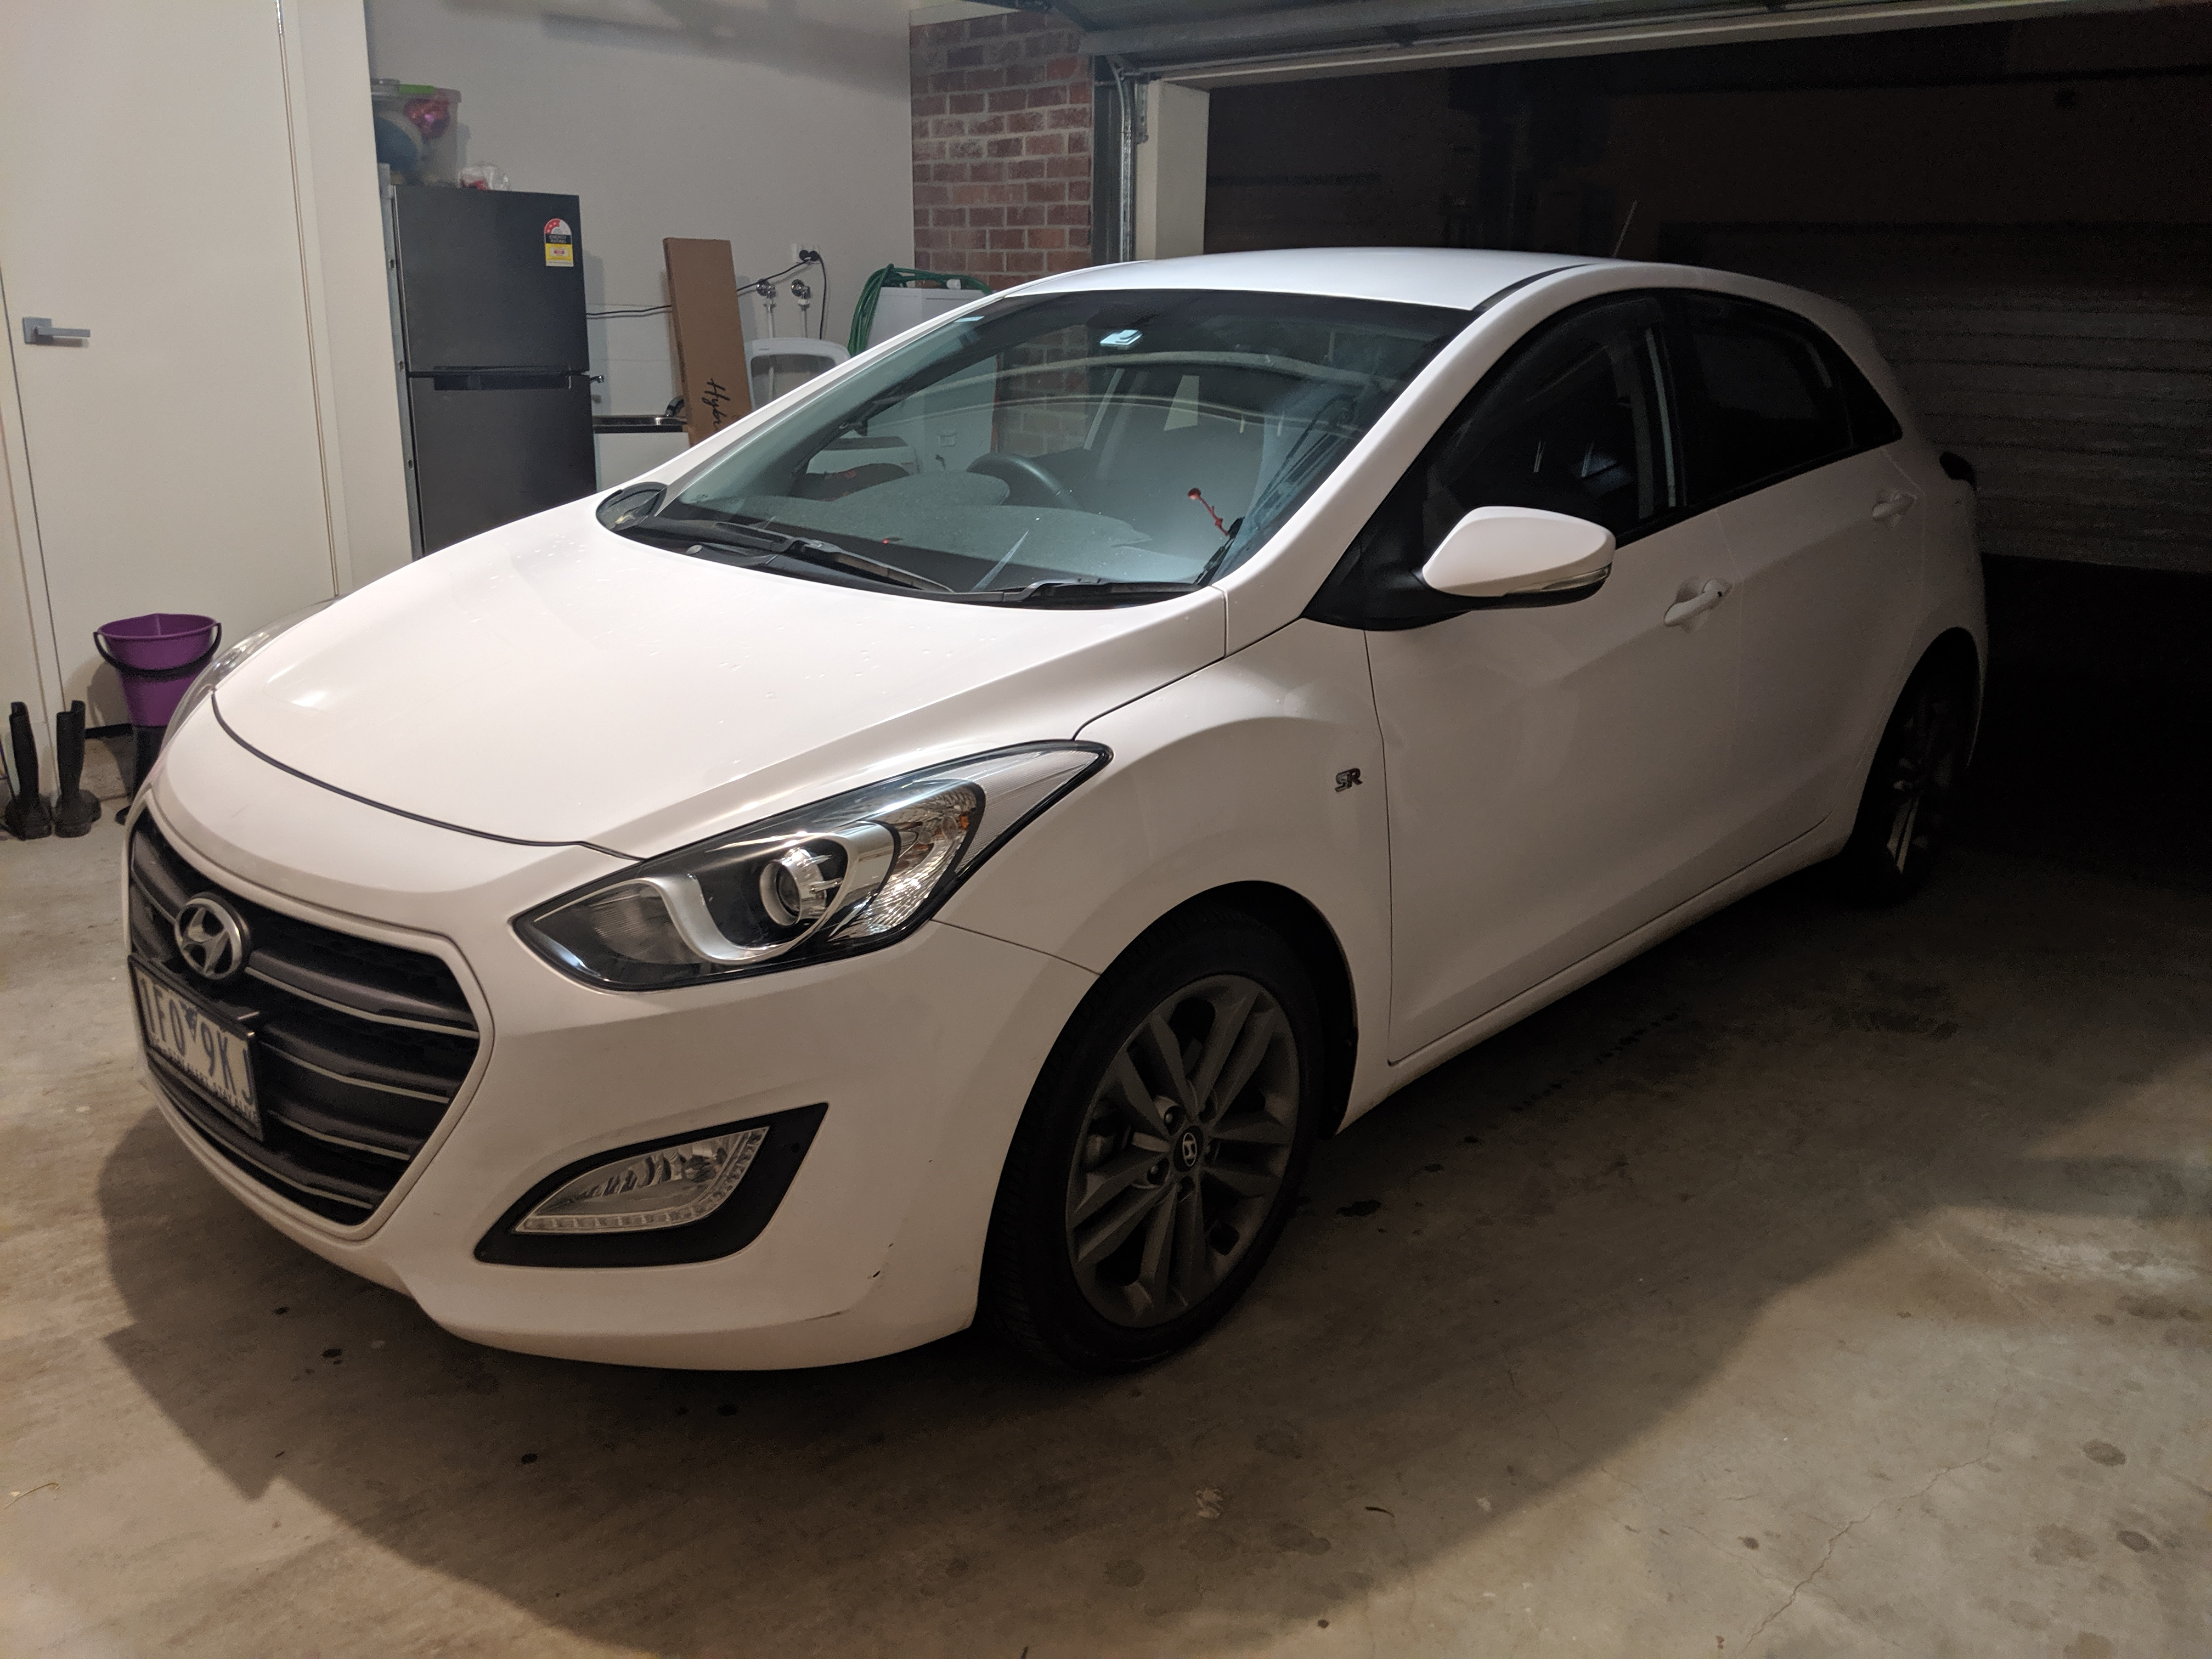 Picture of Chantelle's 2015 Hyundai I30